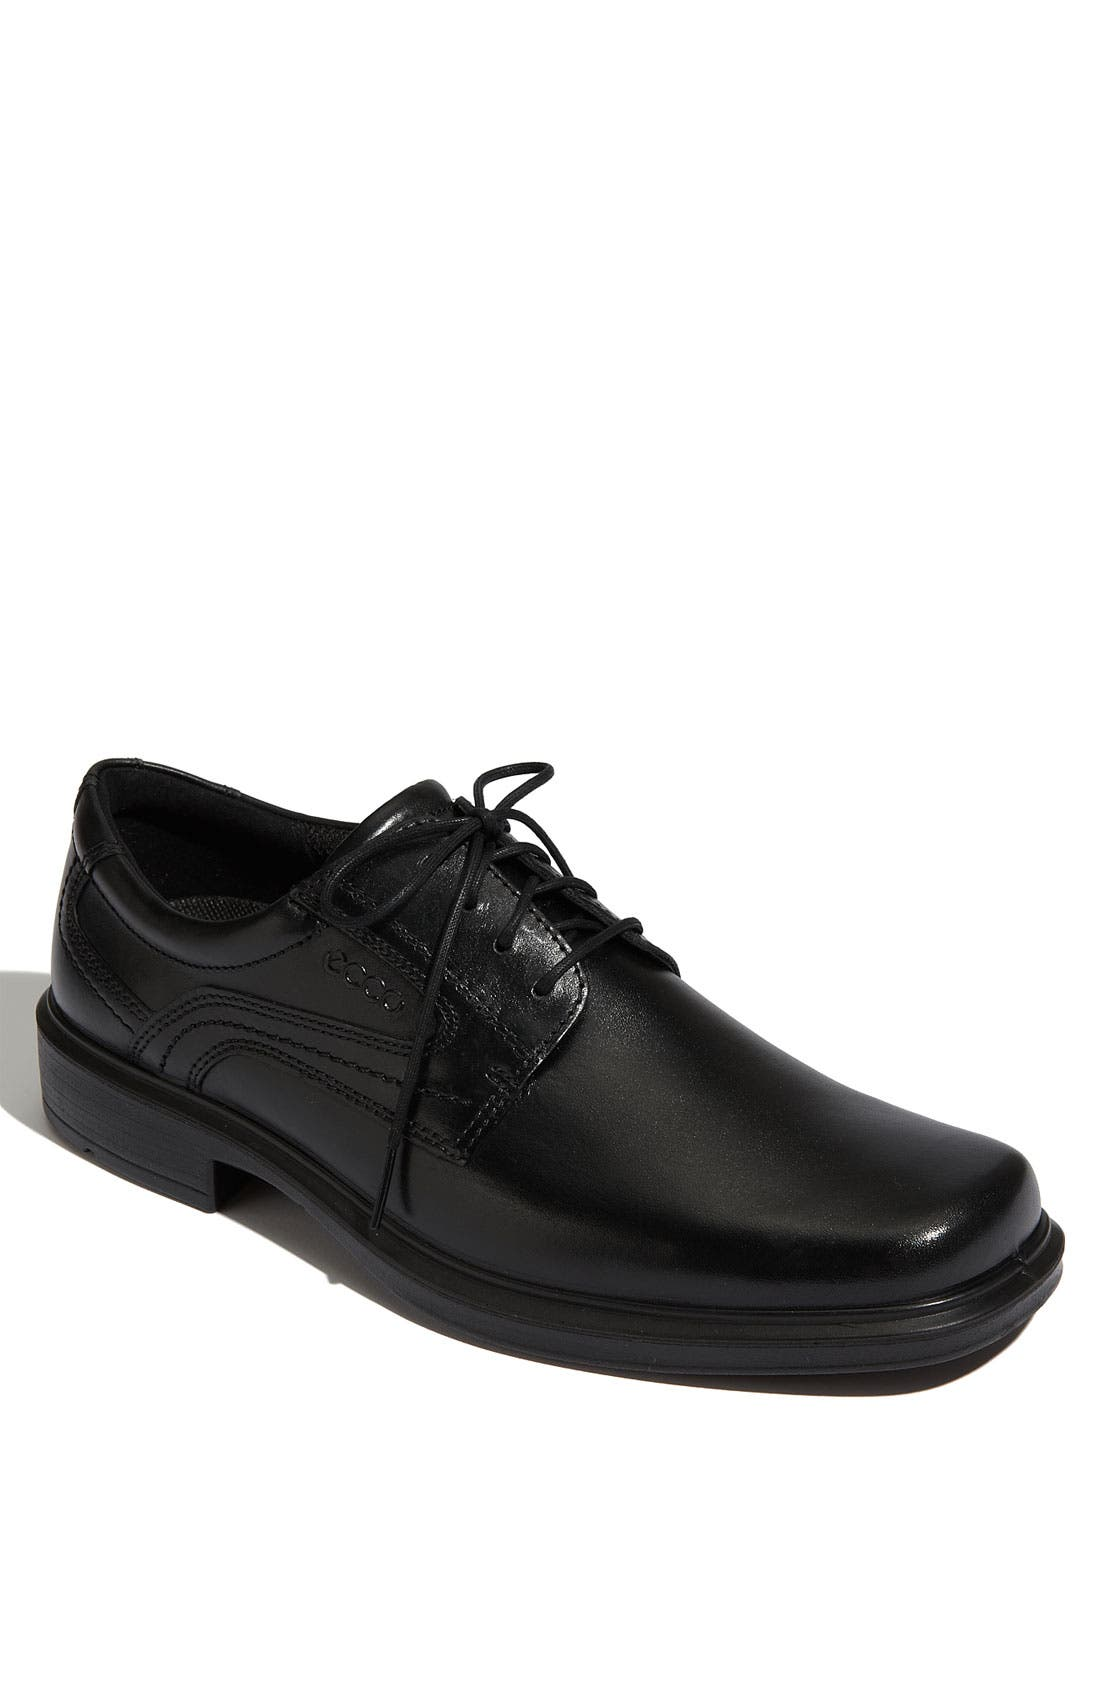 Main Image - ECCO 'Helsinki' Plain Toe Oxford (Men)